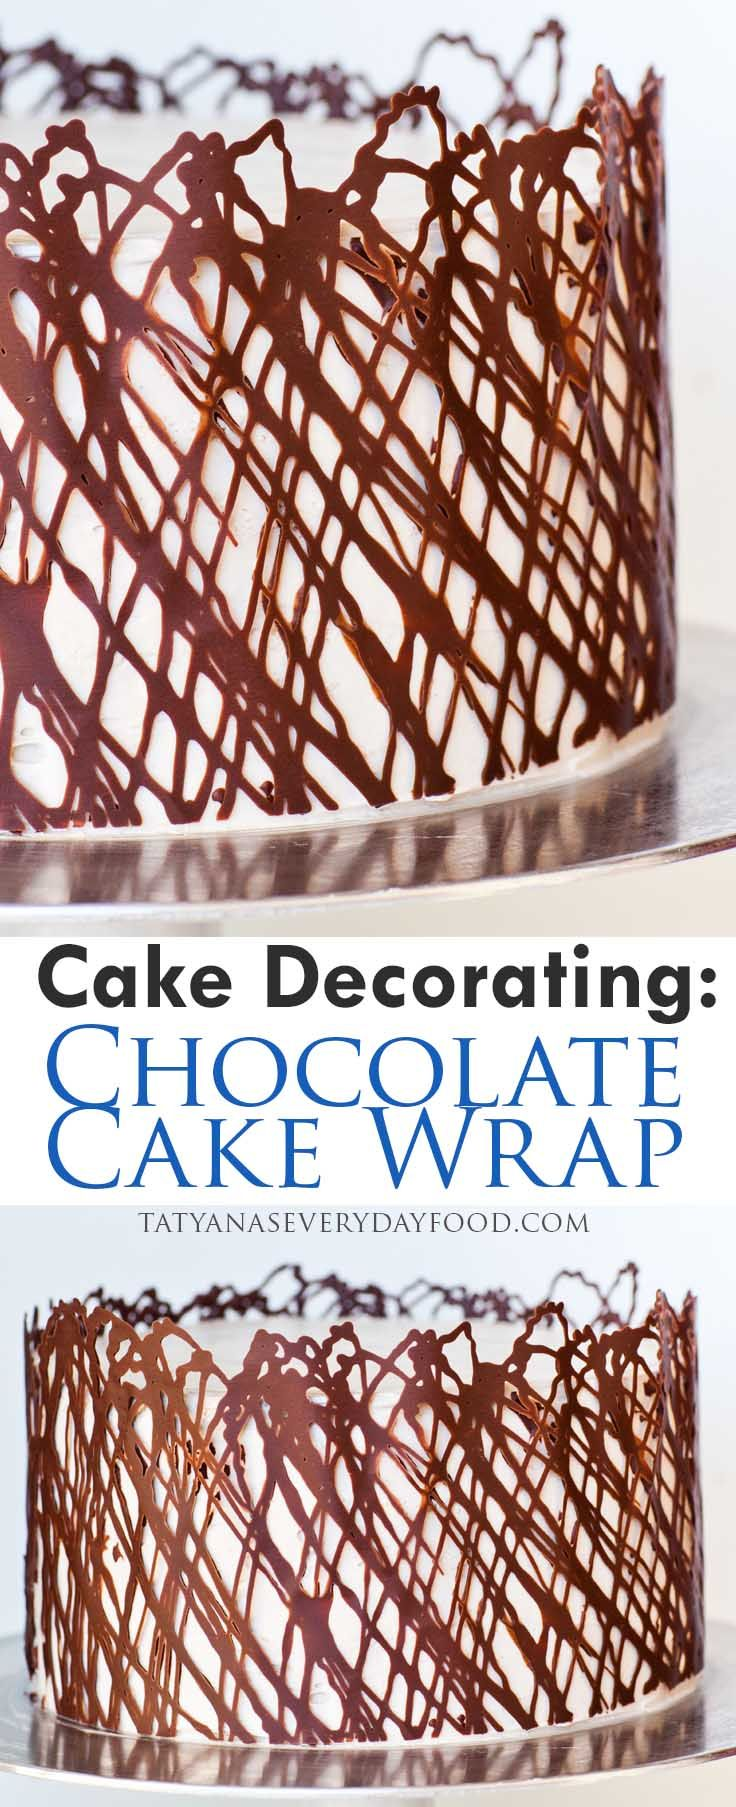 13 Beautifully Decorated Cakes - Cake Decorating - Chocolate Cake Wrap